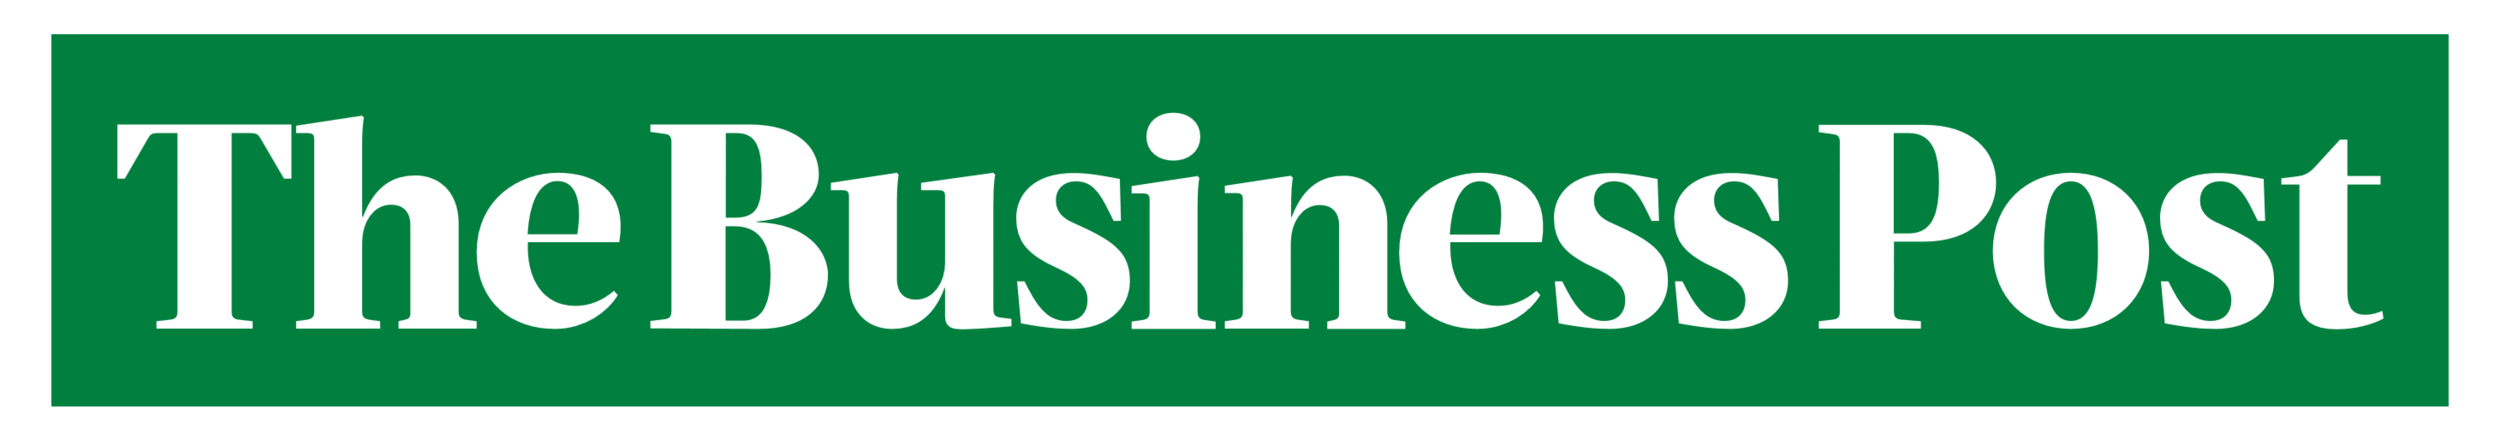 Business post logo.png